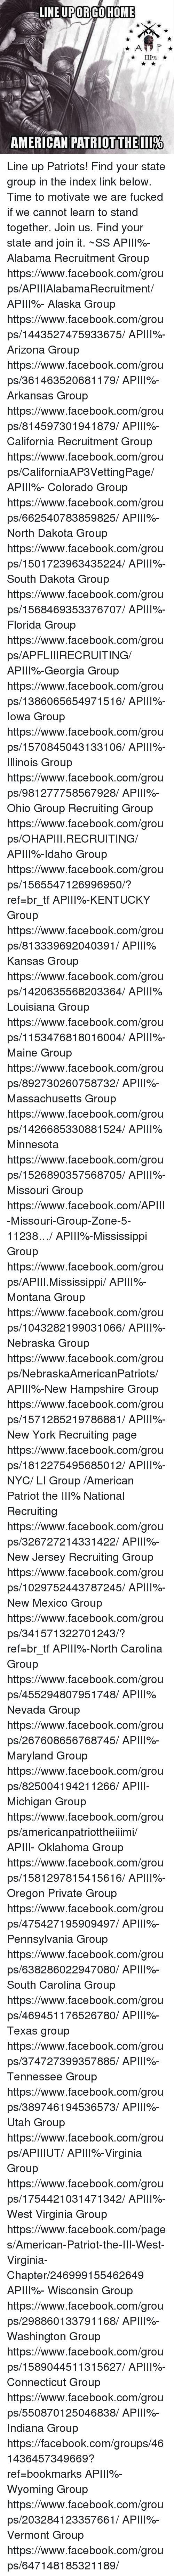 Facebook, Fucking, and Memes: LINE URORCO HOME  A P  AMERICAN PATRIOTTHEIII% Line up Patriots! Find your state group in the index link below. Time to motivate we are fucked if we cannot learn to stand together. Join us. Find your state and join it.  ~SS   APIII%-Alabama Recruitment Group https://www.facebook.com/groups/APIIIAlabamaRecruitment/ APIII%- Alaska Group https://www.facebook.com/groups/1443527475933675/ APIII%- Arizona Group https://www.facebook.com/groups/361463520681179/ APIII%- Arkansas Group https://www.facebook.com/groups/814597301941879/ APIII%- California Recruitment Group https://www.facebook.com/groups/CaliforniaAP3VettingPage/ APIII%- Colorado Group https://www.facebook.com/groups/662540783859825/ APIII%- North Dakota Group https://www.facebook.com/groups/1501723963435224/ APIII%- South Dakota Group https://www.facebook.com/groups/1568469353376707/ APIII%-Florida Group https://www.facebook.com/groups/APFLIIIRECRUITING/ APIII%-Georgia Group https://www.facebook.com/groups/1386065654971516/ APIII%-Iowa Group https://www.facebook.com/groups/1570845043133106/ APIII%-Illinois Group https://www.facebook.com/groups/981277758567928/ APIII%-Ohio Group Recruiting Group https://www.facebook.com/groups/OHAPIII.RECRUITING/ APIII%-Idaho Group https://www.facebook.com/groups/1565547126996950/?ref=br_tf APIII%-KENTUCKY Group https://www.facebook.com/groups/813339692040391/ APIII% Kansas Group https://www.facebook.com/groups/1420635568203364/ APIII% Louisiana Group https://www.facebook.com/groups/1153476818016004/ APIII%-Maine Group https://www.facebook.com/groups/892730260758732/ APIII%-Massachusetts Group https://www.facebook.com/groups/1426685330881524/ APIII% Minnesota https://www.facebook.com/groups/1526890357568705/ APIII%-Missouri Group https://www.facebook.com/APIII-Missouri-Group-Zone-5-11238…/ APIII%-Mississippi Group https://www.facebook.com/groups/APIII.Mississippi/ APIII%-Montana Group https://www.facebook.com/groups/1043282199031066/ APIII%-Nebraska Group https://www.facebook.com/groups/NebraskaAmericanPatriots/ APIII%-New Hampshire Group https://www.facebook.com/groups/1571285219786881/ APIII%- New York Recruiting page https://www.facebook.com/groups/1812275495685012/ APIII%-NYC/ LI Group /American Patriot the III% National Recruiting  https://www.facebook.com/groups/326727214331422/ APIII%-New Jersey Recruiting Group https://www.facebook.com/groups/1029752443787245/ APIII%-New Mexico Group https://www.facebook.com/groups/341571322701243/?ref=br_tf APIII%-North Carolina Group https://www.facebook.com/groups/455294807951748/ APIII% Nevada Group https://www.facebook.com/groups/267608656768745/ APIII%-Maryland Group https://www.facebook.com/groups/825004194211266/ APIII- Michigan Group  https://www.facebook.com/groups/americanpatriottheiiimi/ APIII- Oklahoma Group https://www.facebook.com/groups/1581297815415616/ APIII%- Oregon Private Group https://www.facebook.com/groups/475427195909497/ APIII%- Pennsylvania Group https://www.facebook.com/groups/638286022947080/ APIII%- South Carolina Group https://www.facebook.com/groups/469451176526780/ APIII%-Texas group https://www.facebook.com/groups/374727399357885/ APIII%-Tennessee Group https://www.facebook.com/groups/389746194536573/ APIII%- Utah Group https://www.facebook.com/groups/APIIIUT/ APIII%-Virginia Group https://www.facebook.com/groups/1754421031471342/ APIII%- West Virginia Group https://www.facebook.com/pages/American-Patriot-the-III-West-Virginia-Chapter/246999155462649 APIII%- Wisconsin Group https://www.facebook.com/groups/298860133791168/ APIII%-Washington Group https://www.facebook.com/groups/1589044511315627/ APIII%- Connecticut Group https://www.facebook.com/groups/550870125046838/ APIII%- Indiana Group https://facebook.com/groups/461436457349669?ref=bookmarks APIII%- Wyoming Group https://www.facebook.com/groups/203284123357661/ APIII%- Vermont Group  https://www.facebook.com/groups/647148185321189/